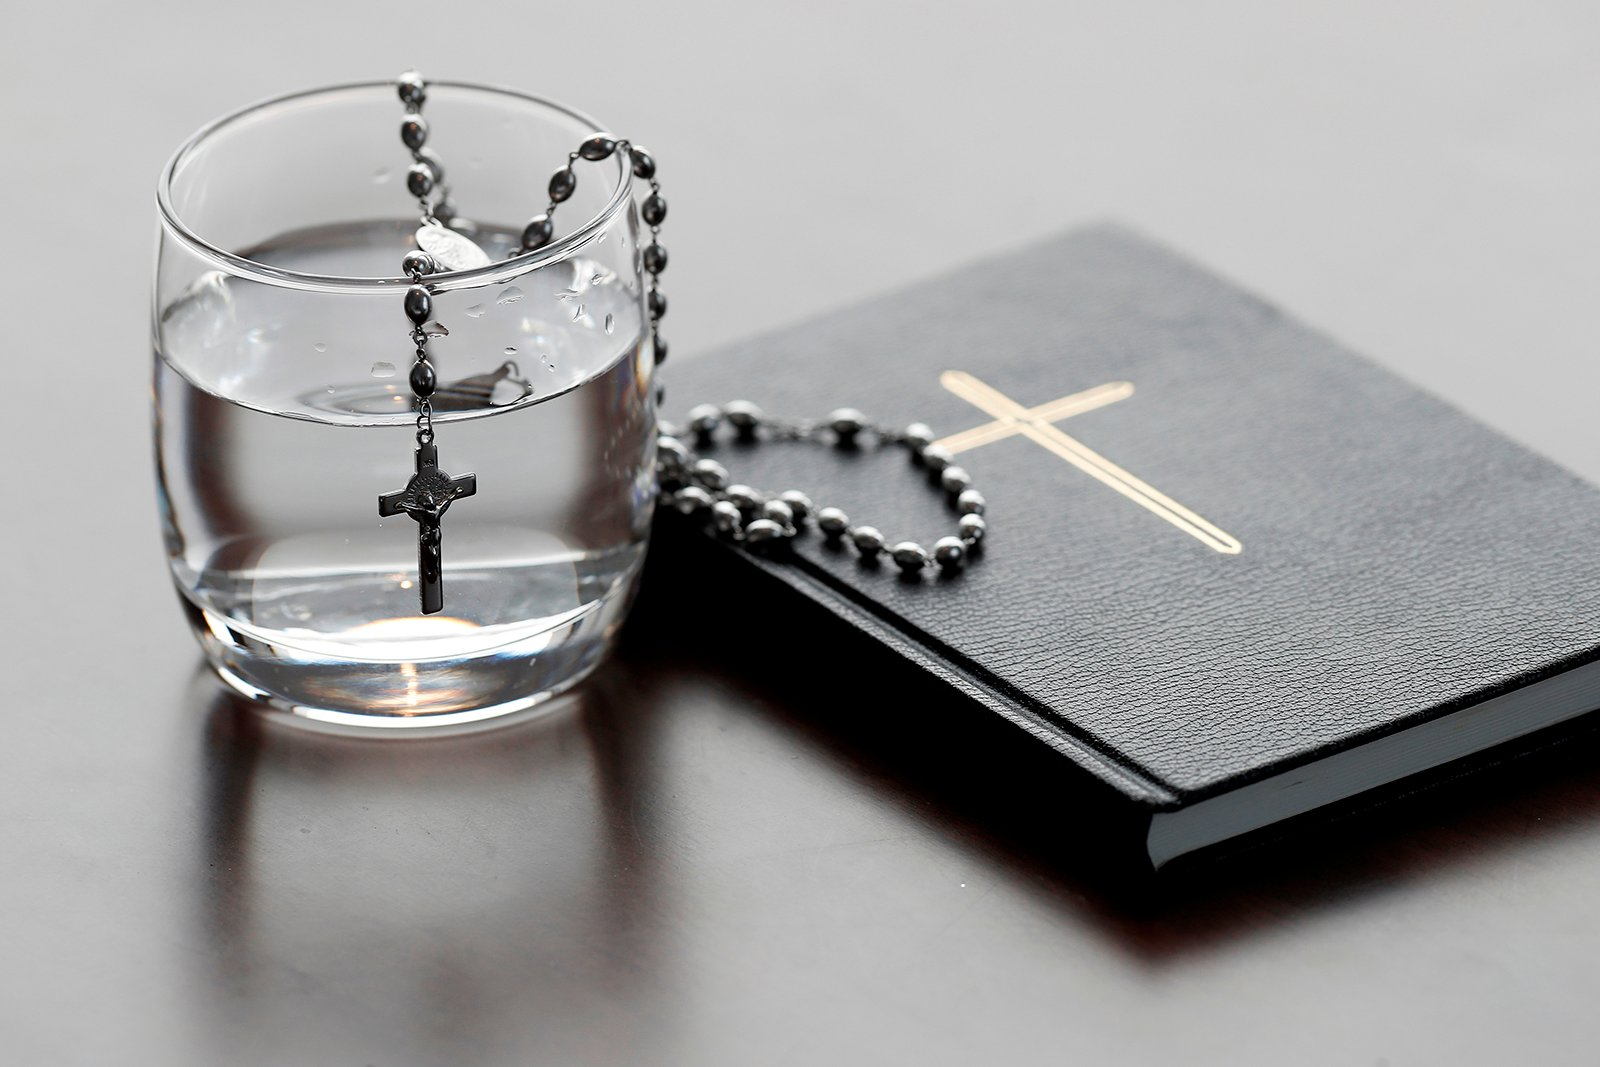 What are the origins of Lent?